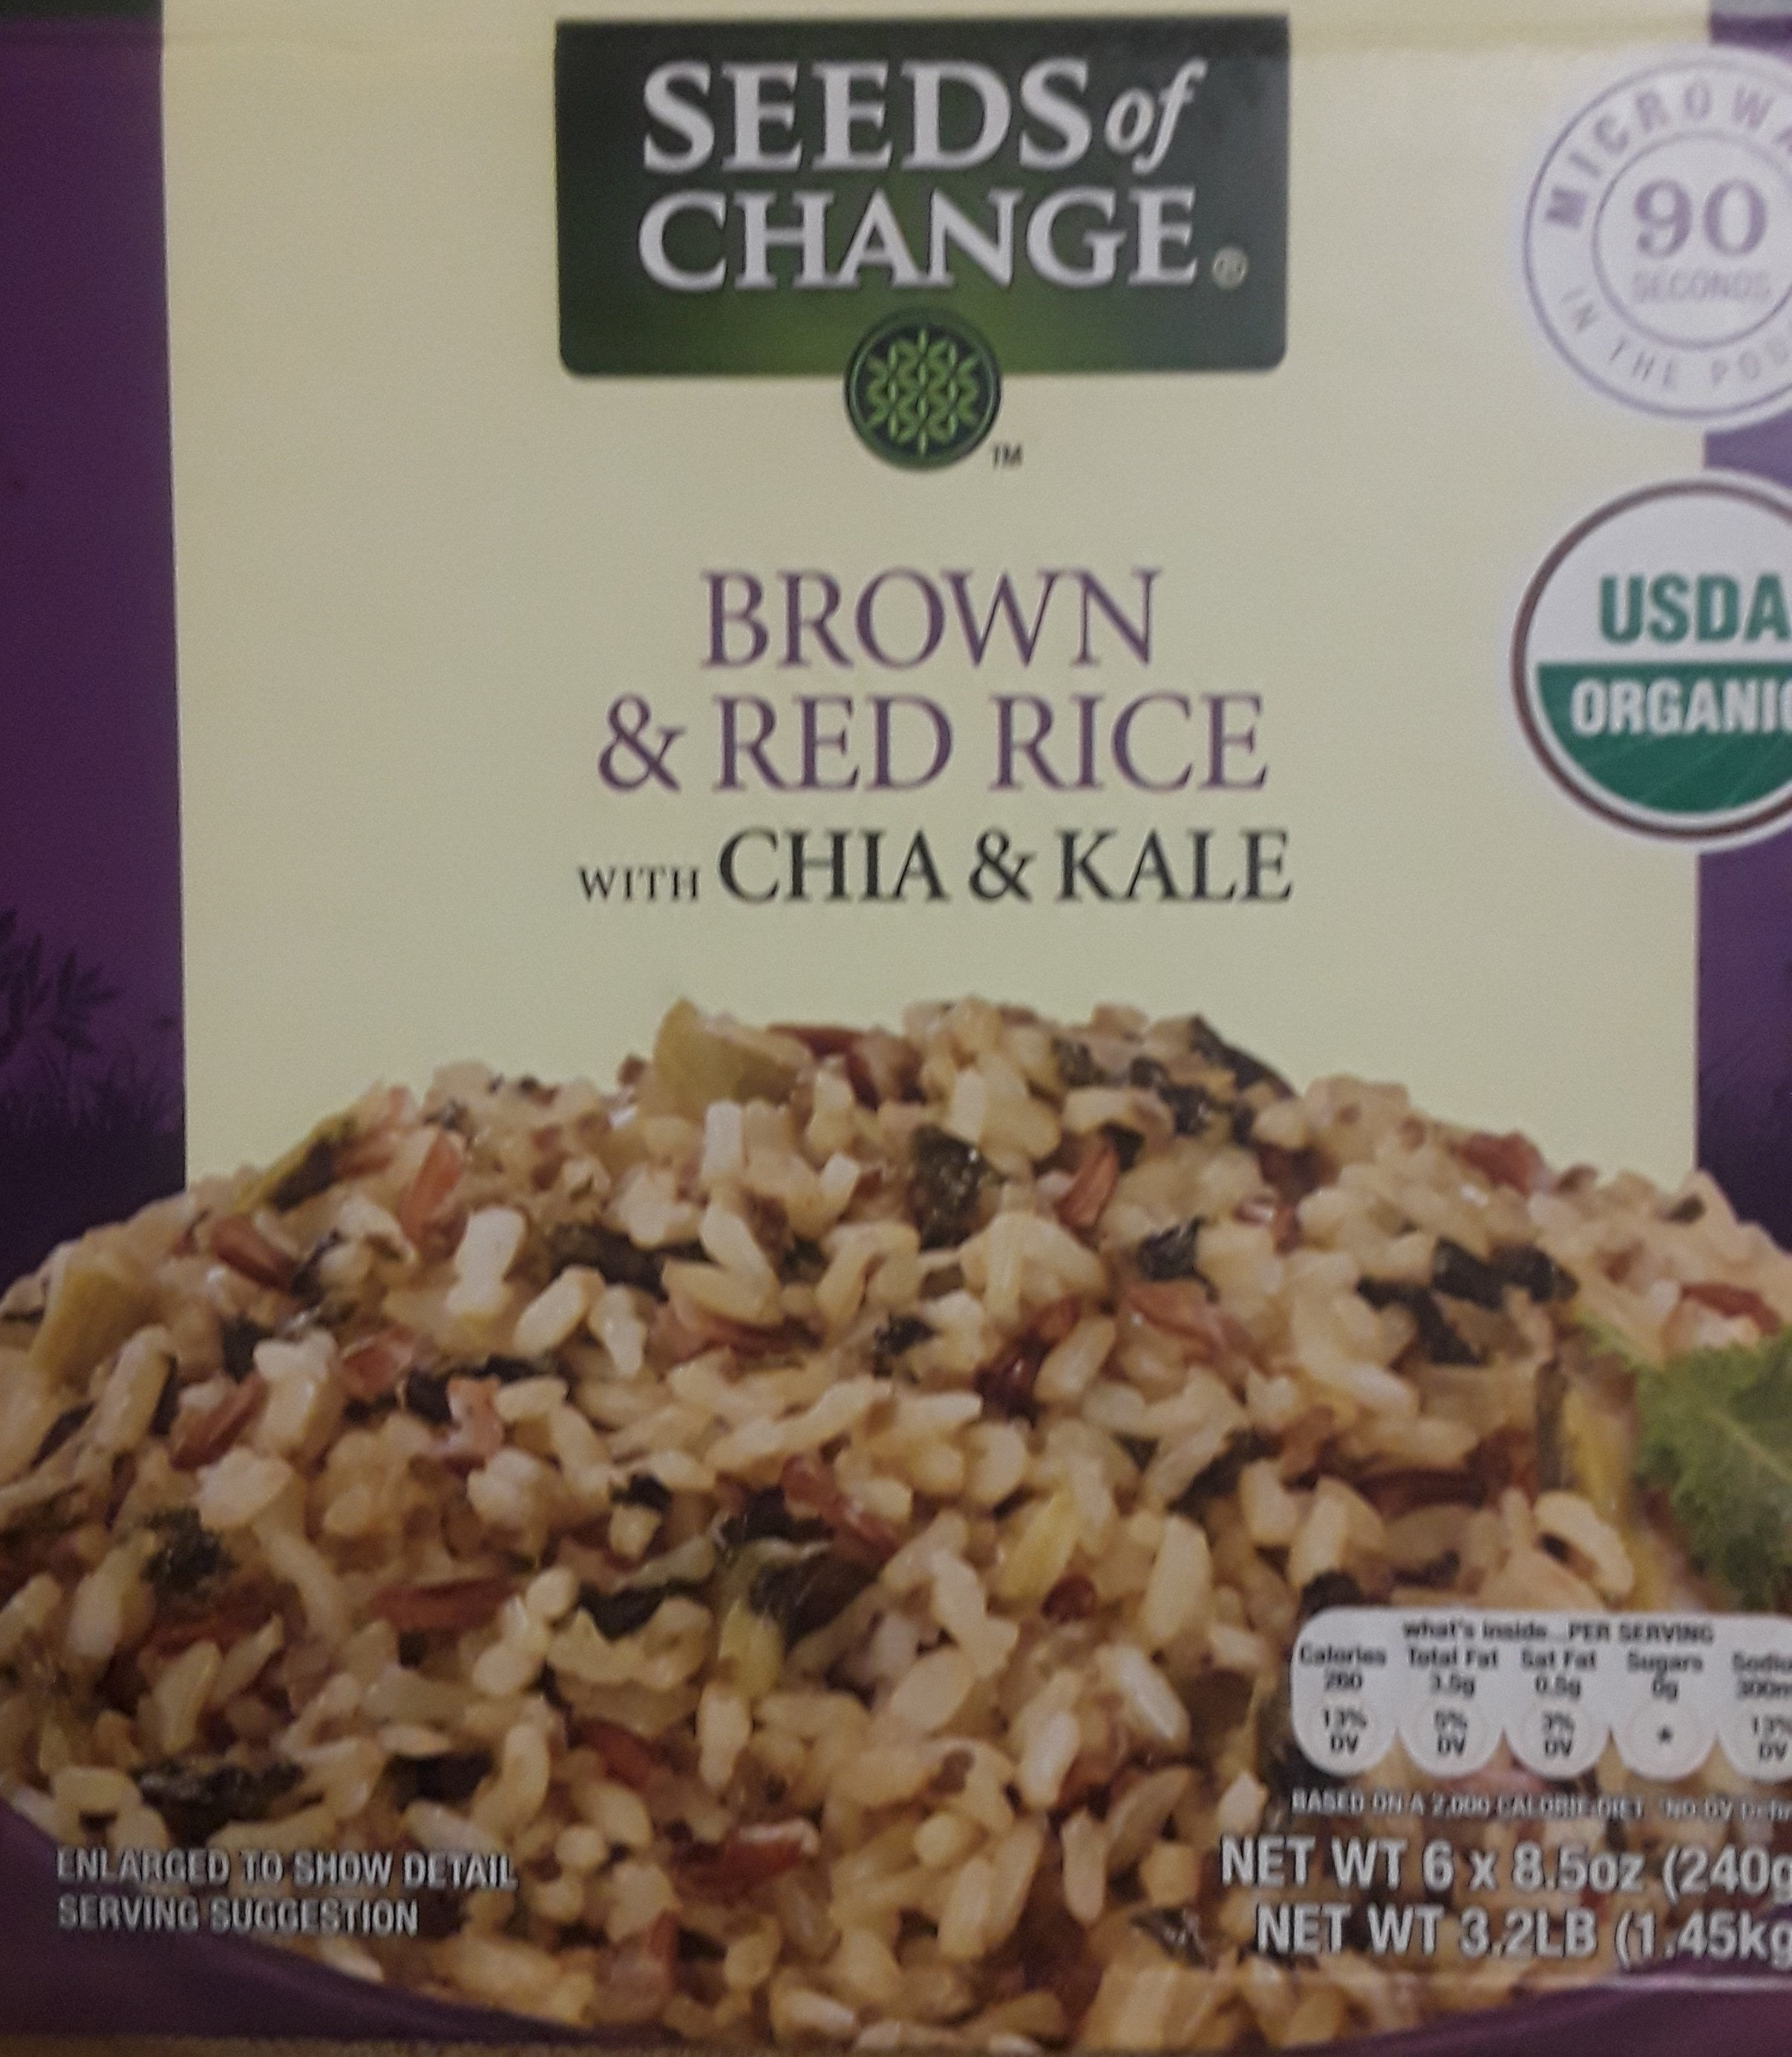 Brown & Red Rice With Chia & Kale - Product - en